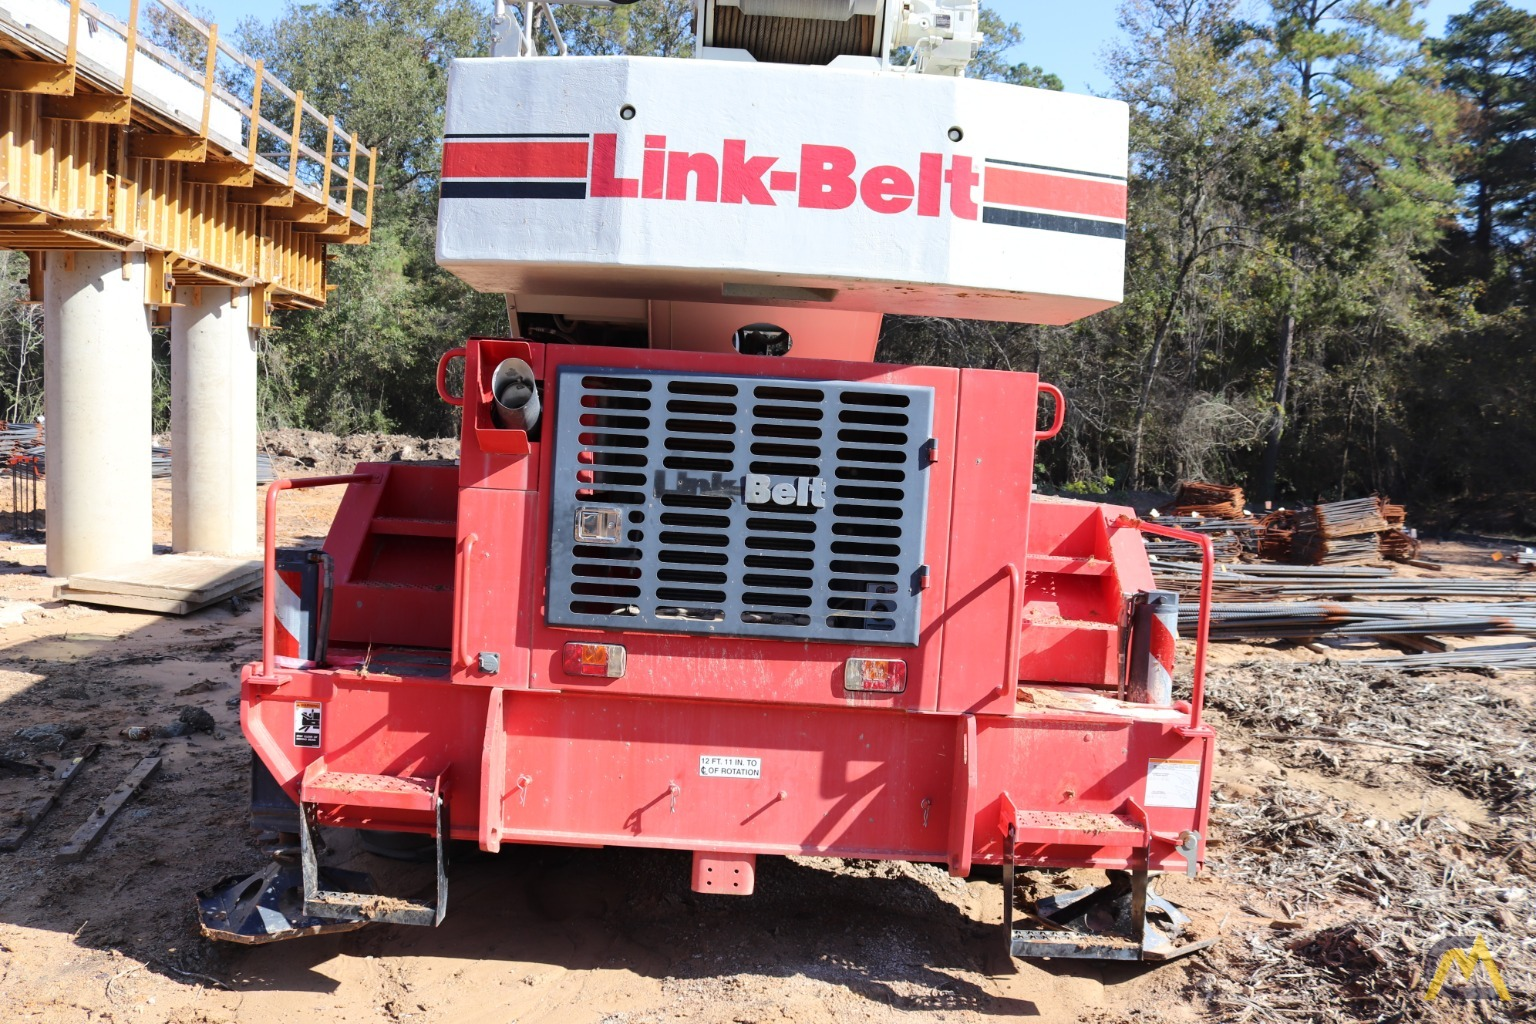 2014 Link-Belt RTC-8065 65-Ton Rough Terrain Crane 29